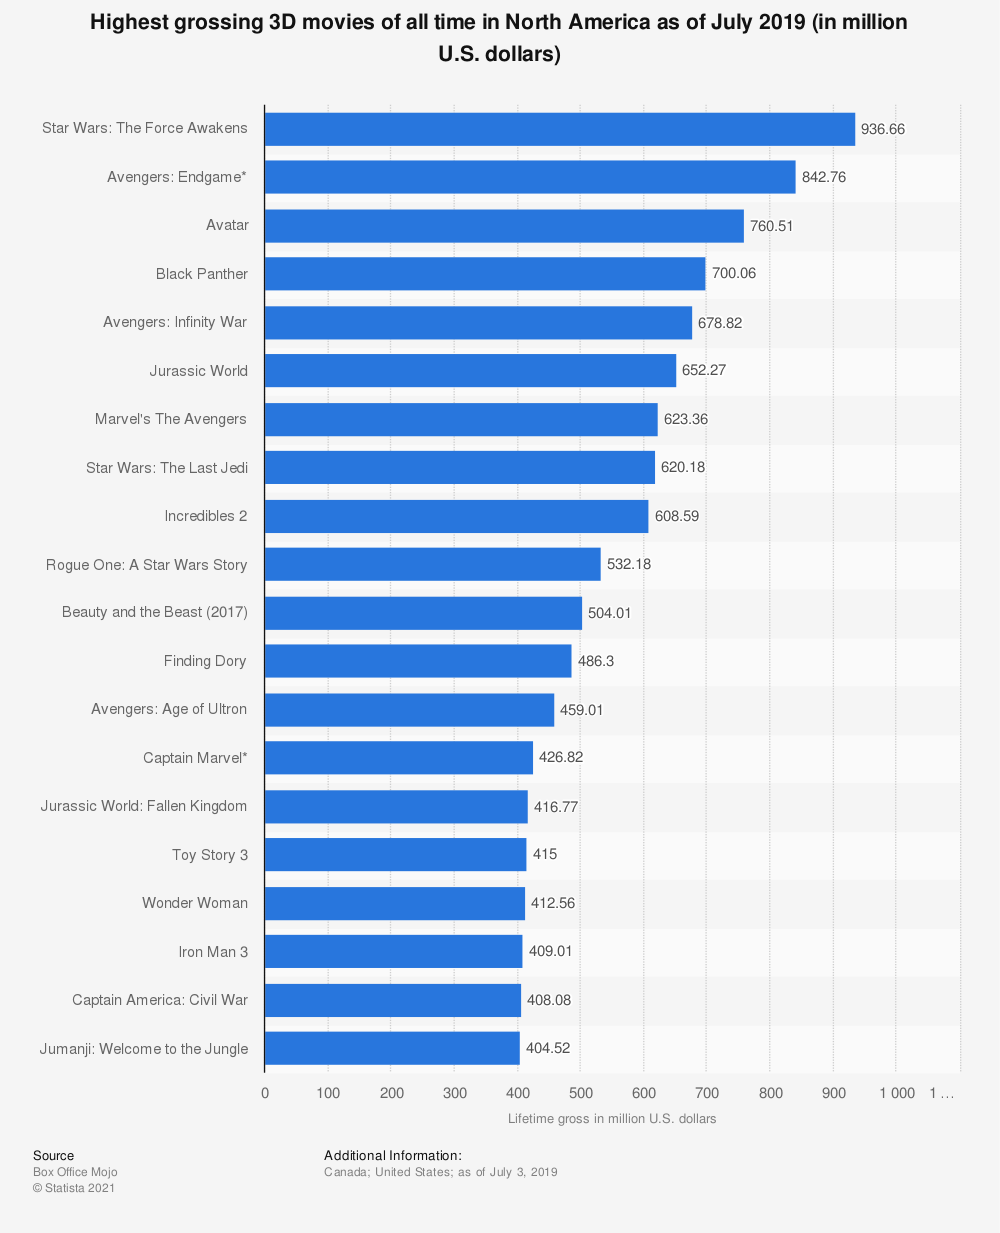 Statistic: Highest grossing 3D movies of all time in North America as of July 2019 (in million U.S. dollars) | Statista